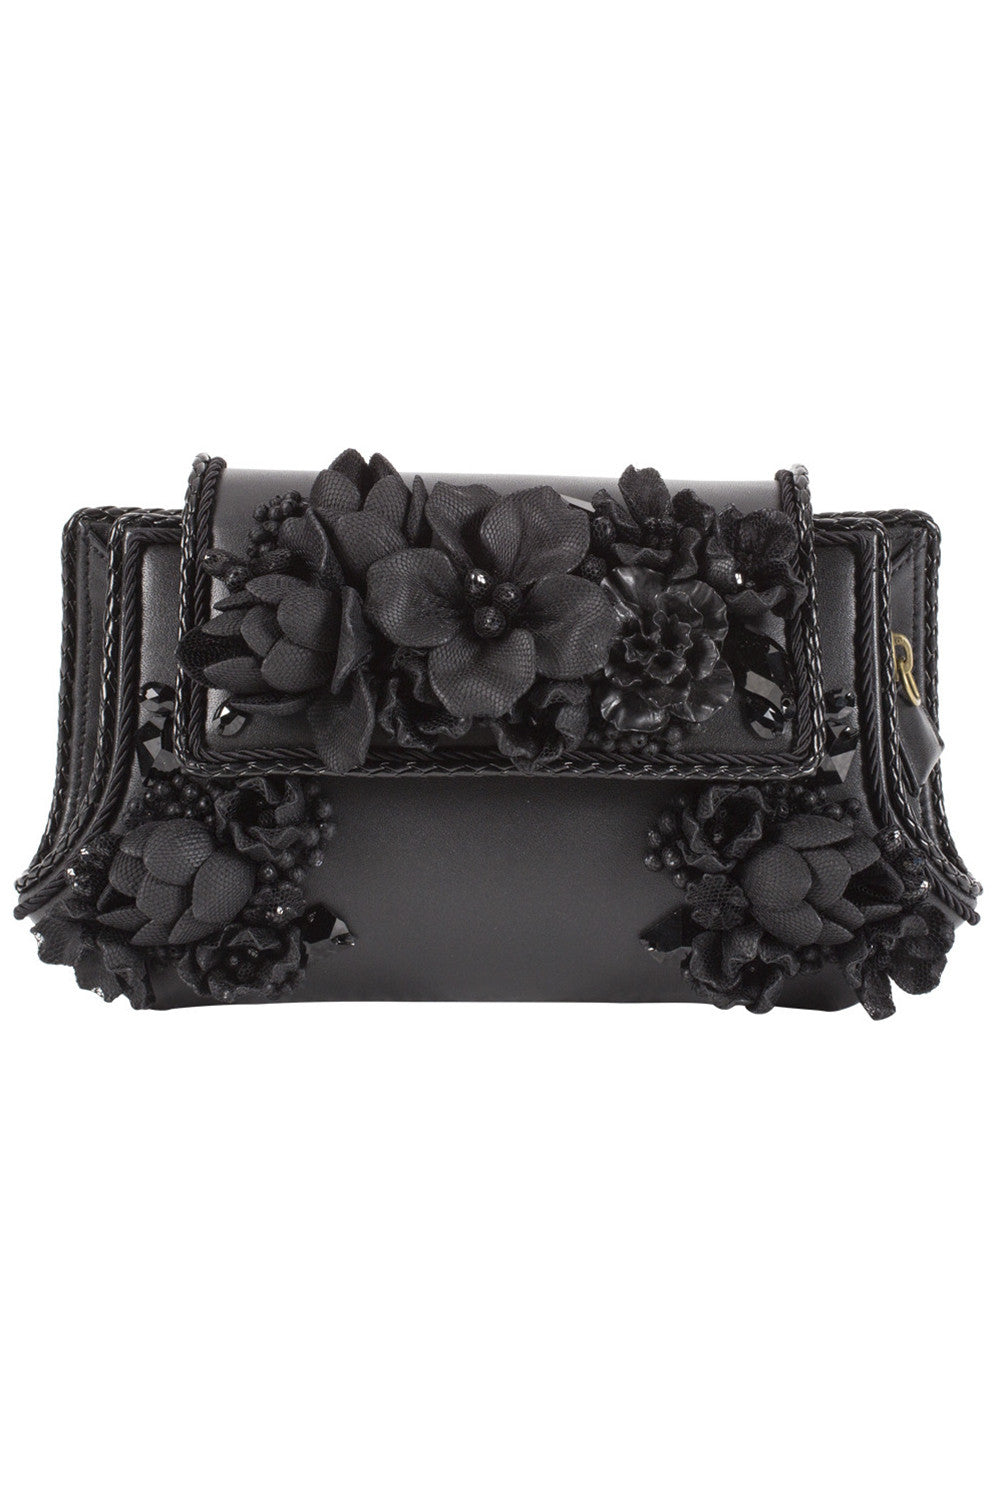 UNDERLAND Clutch in Black